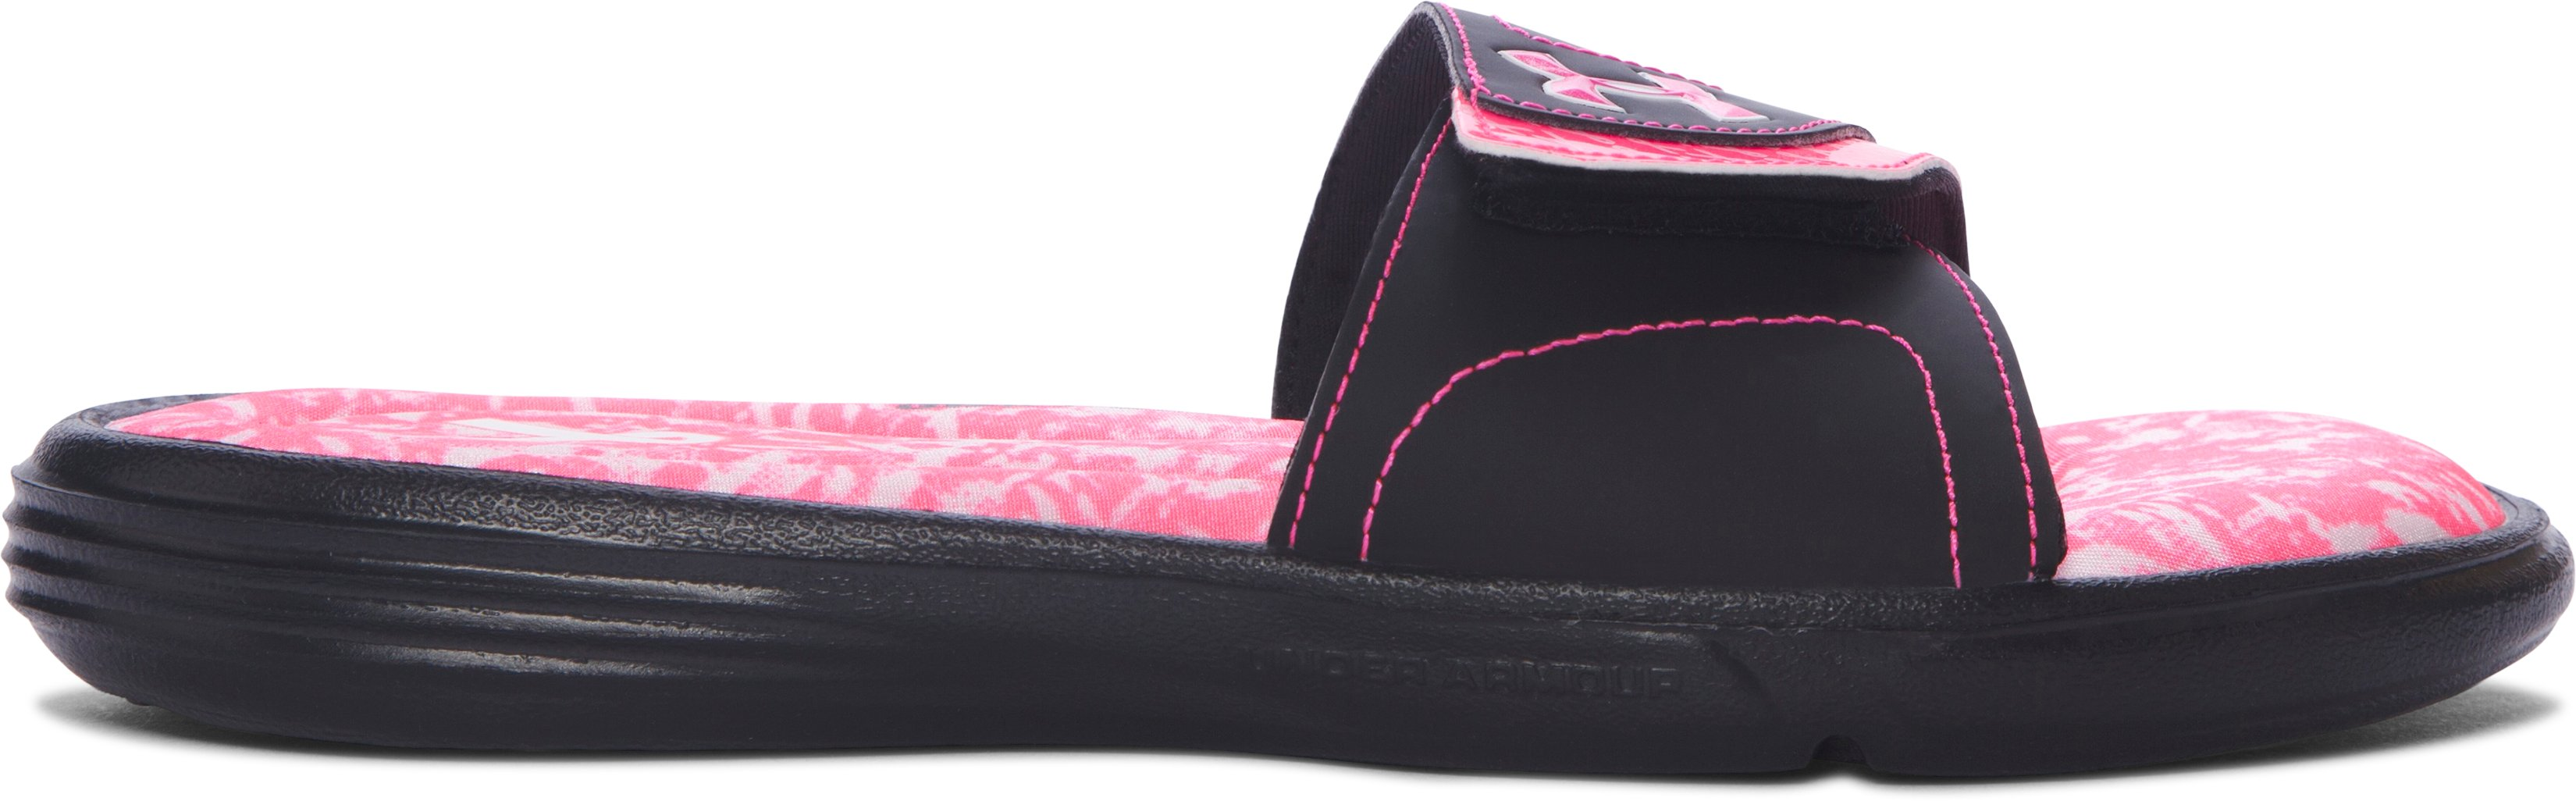 Women S Ua Power In Pink 174 Ignite Vii Slides Under Armour Us